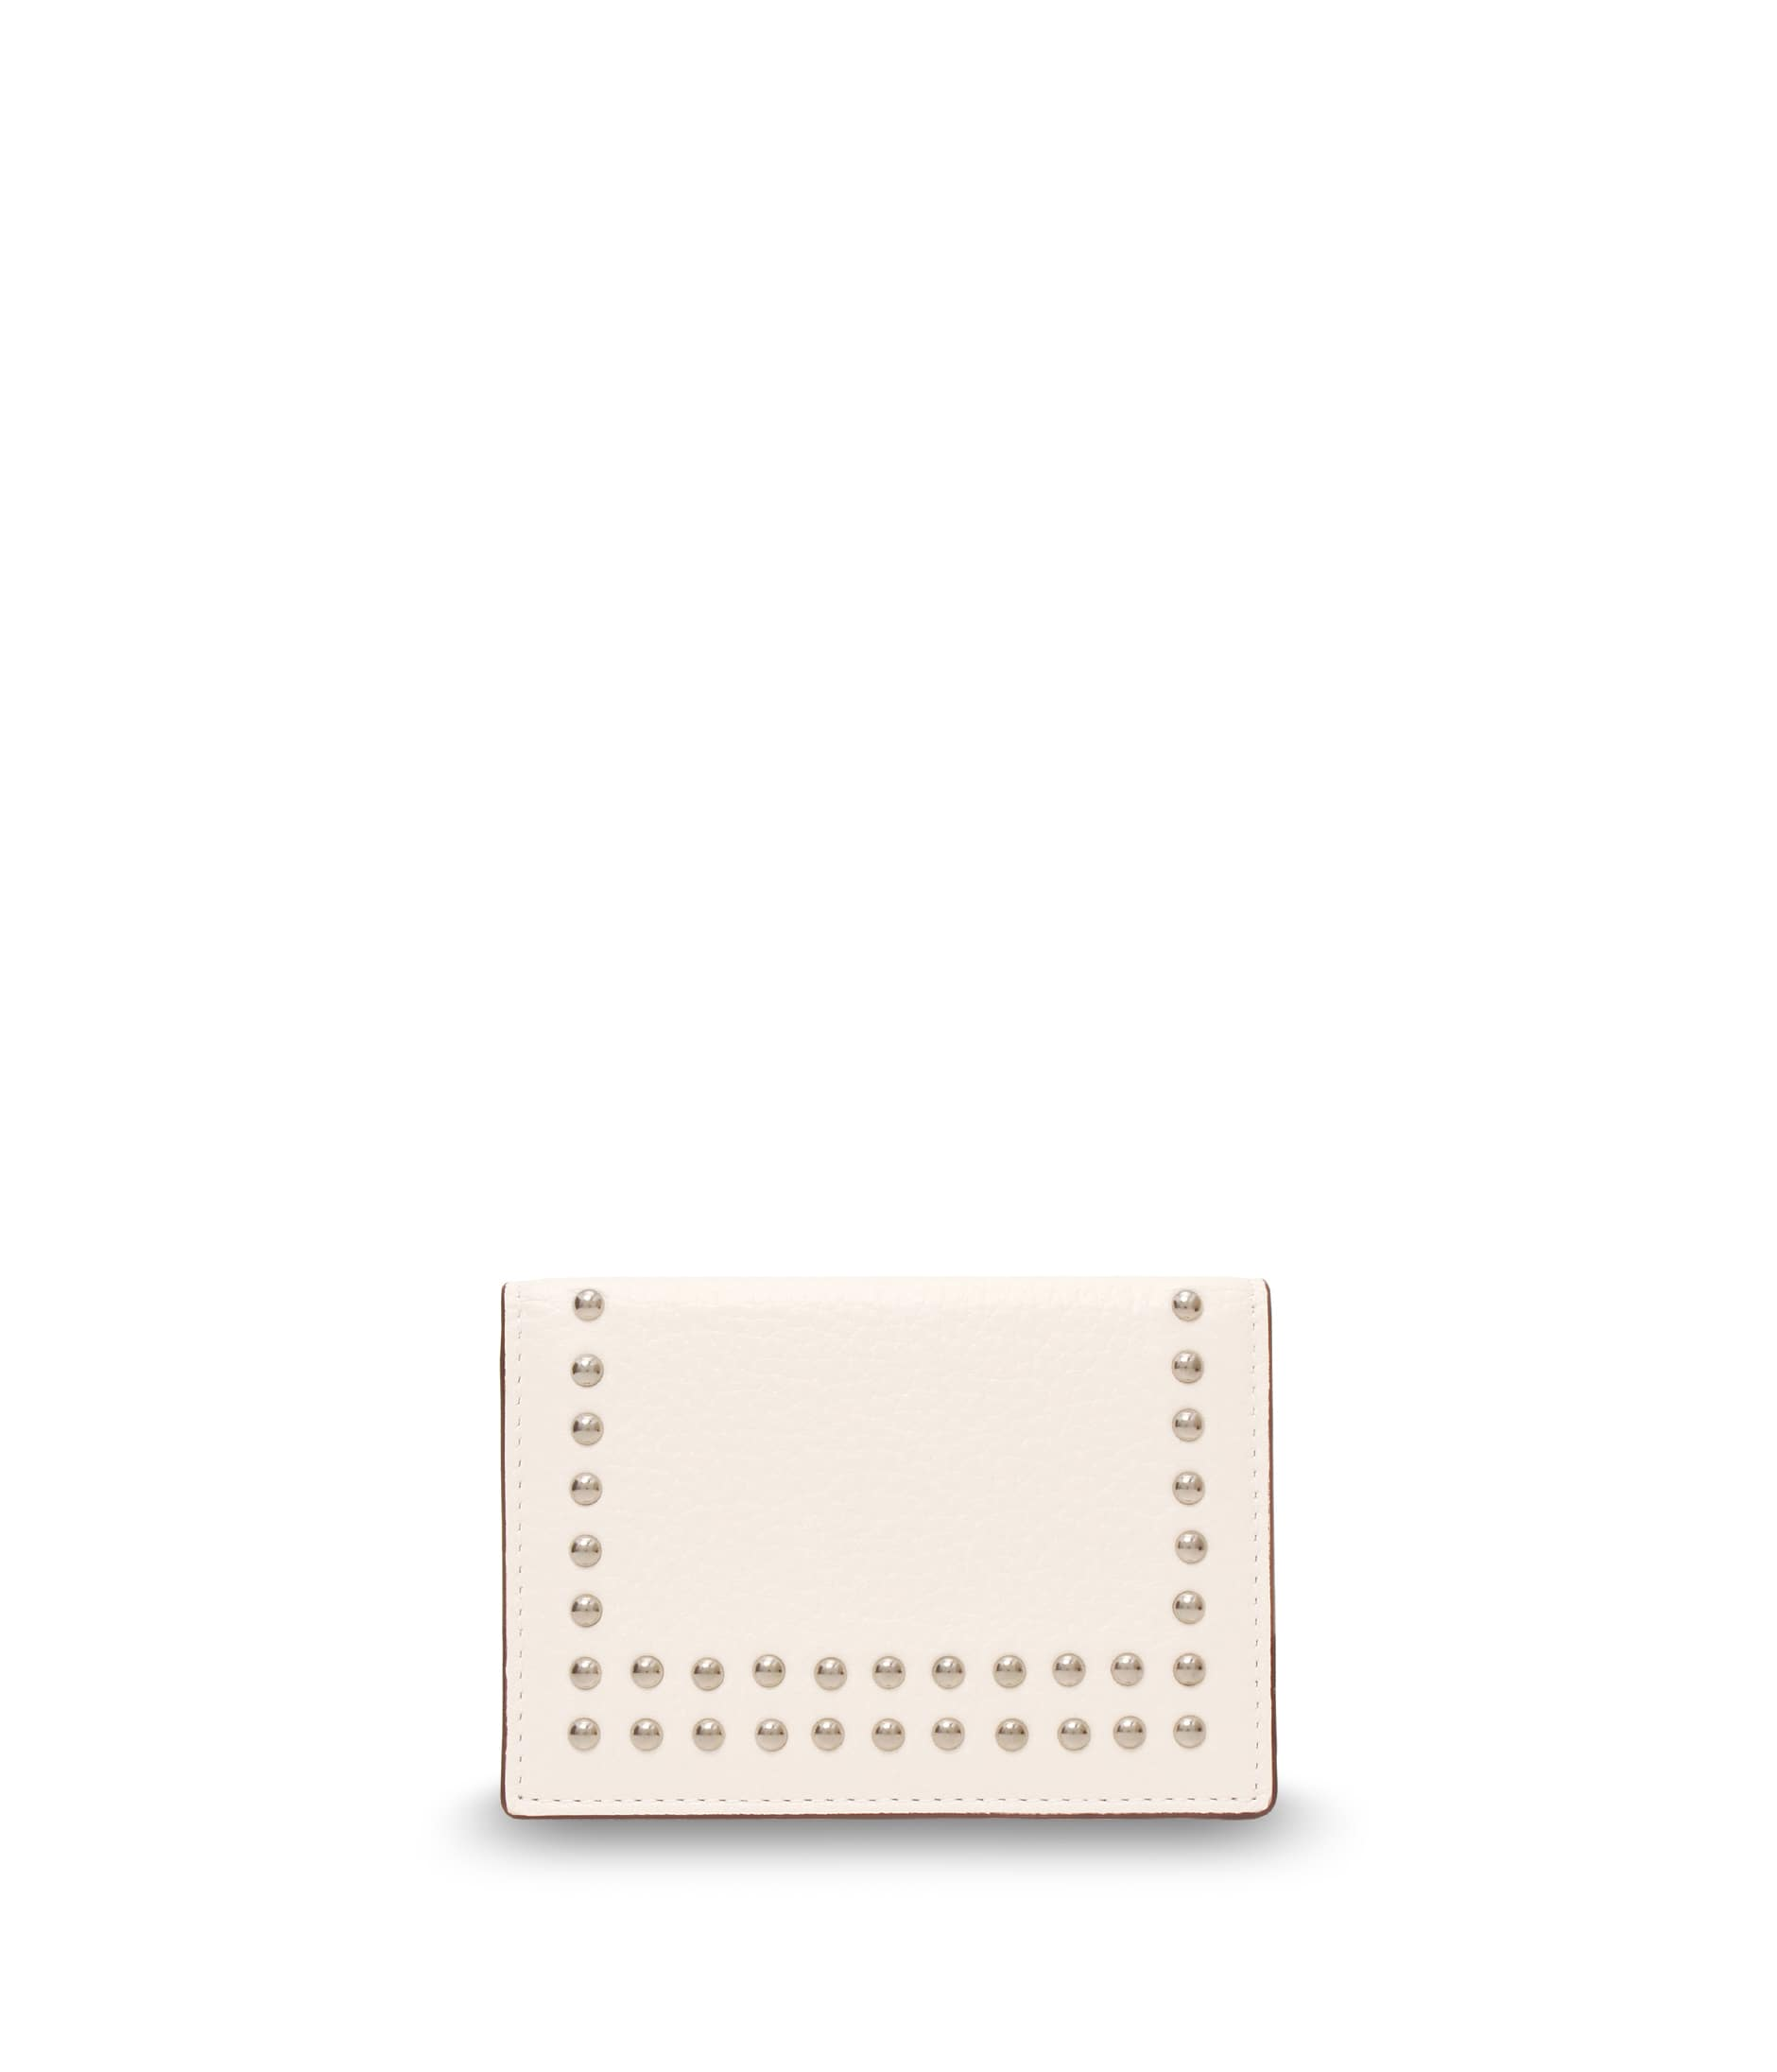 VISIT CARD HOLDER WITH STUDS 詳細画像 NEW WHITE 1